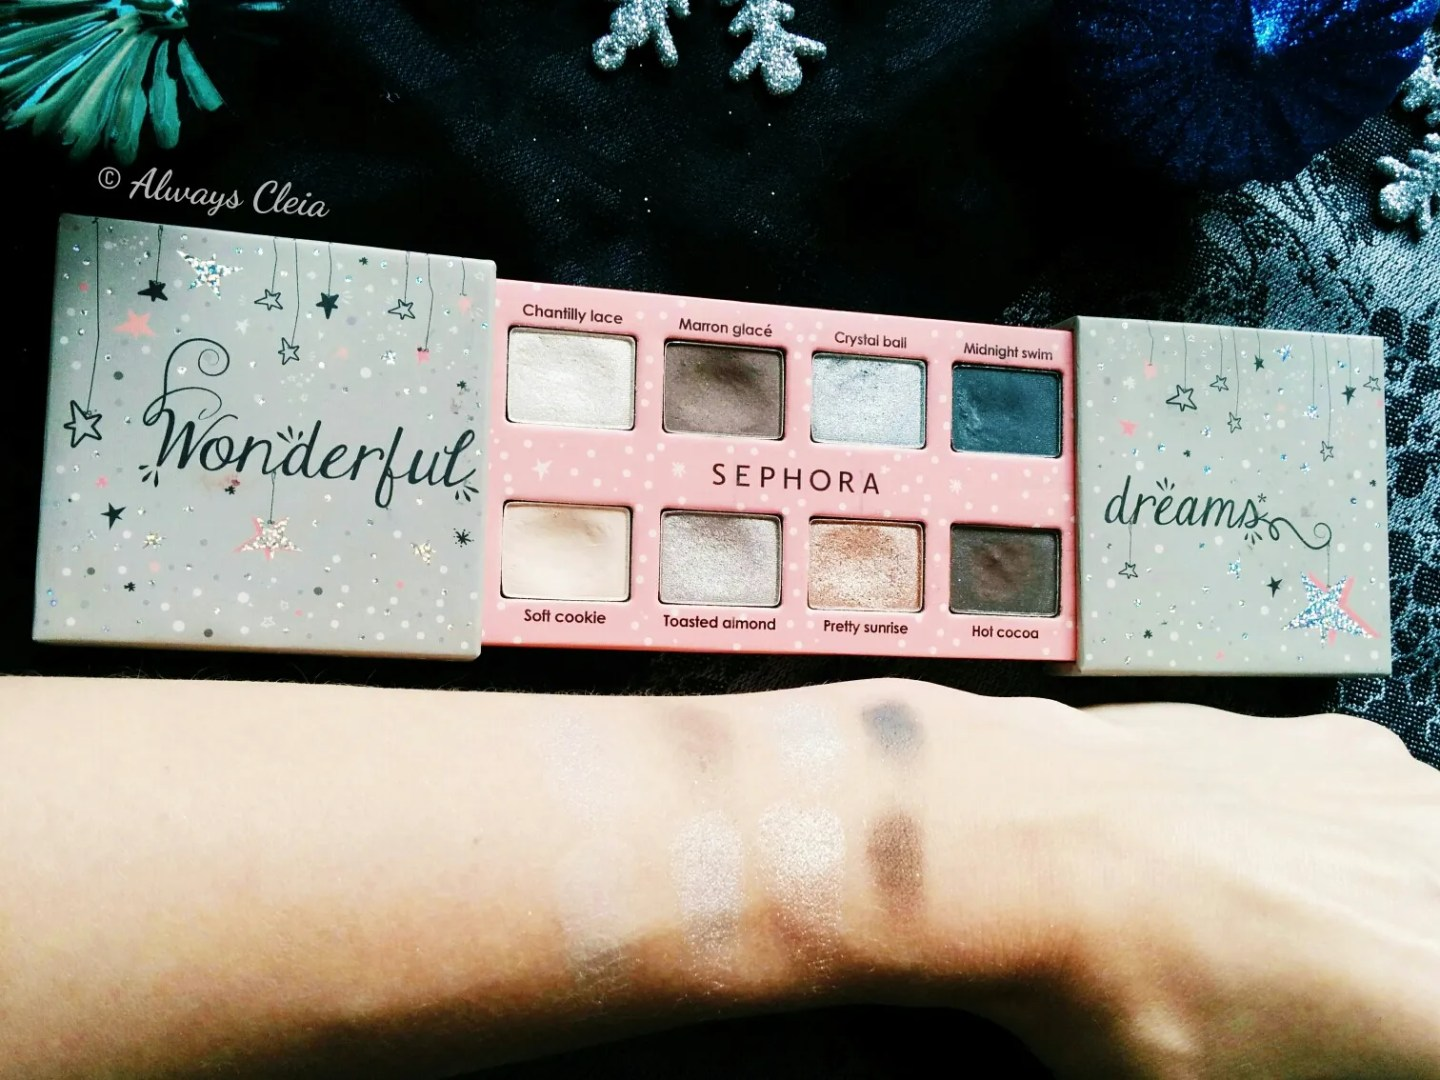 Sephora Wonderful Dreams Palette Swatches